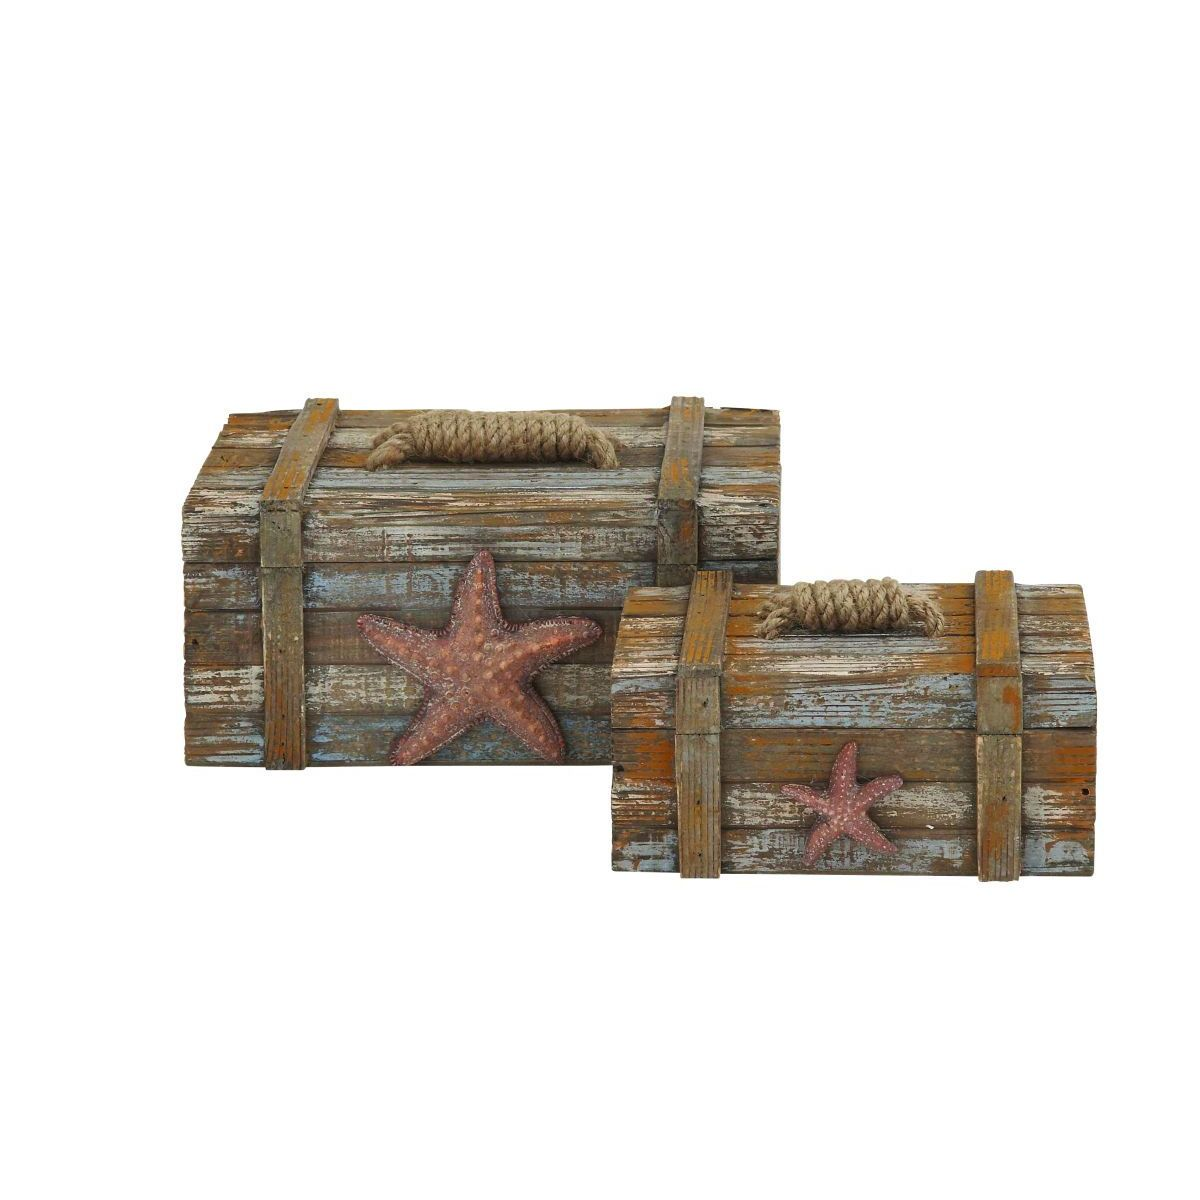 Faux Rustic Nautical-themed Storage Boxes with Jute Rope Accents  sc 1 st  Overstock.com : faux storage box  - Aquiesqueretaro.Com